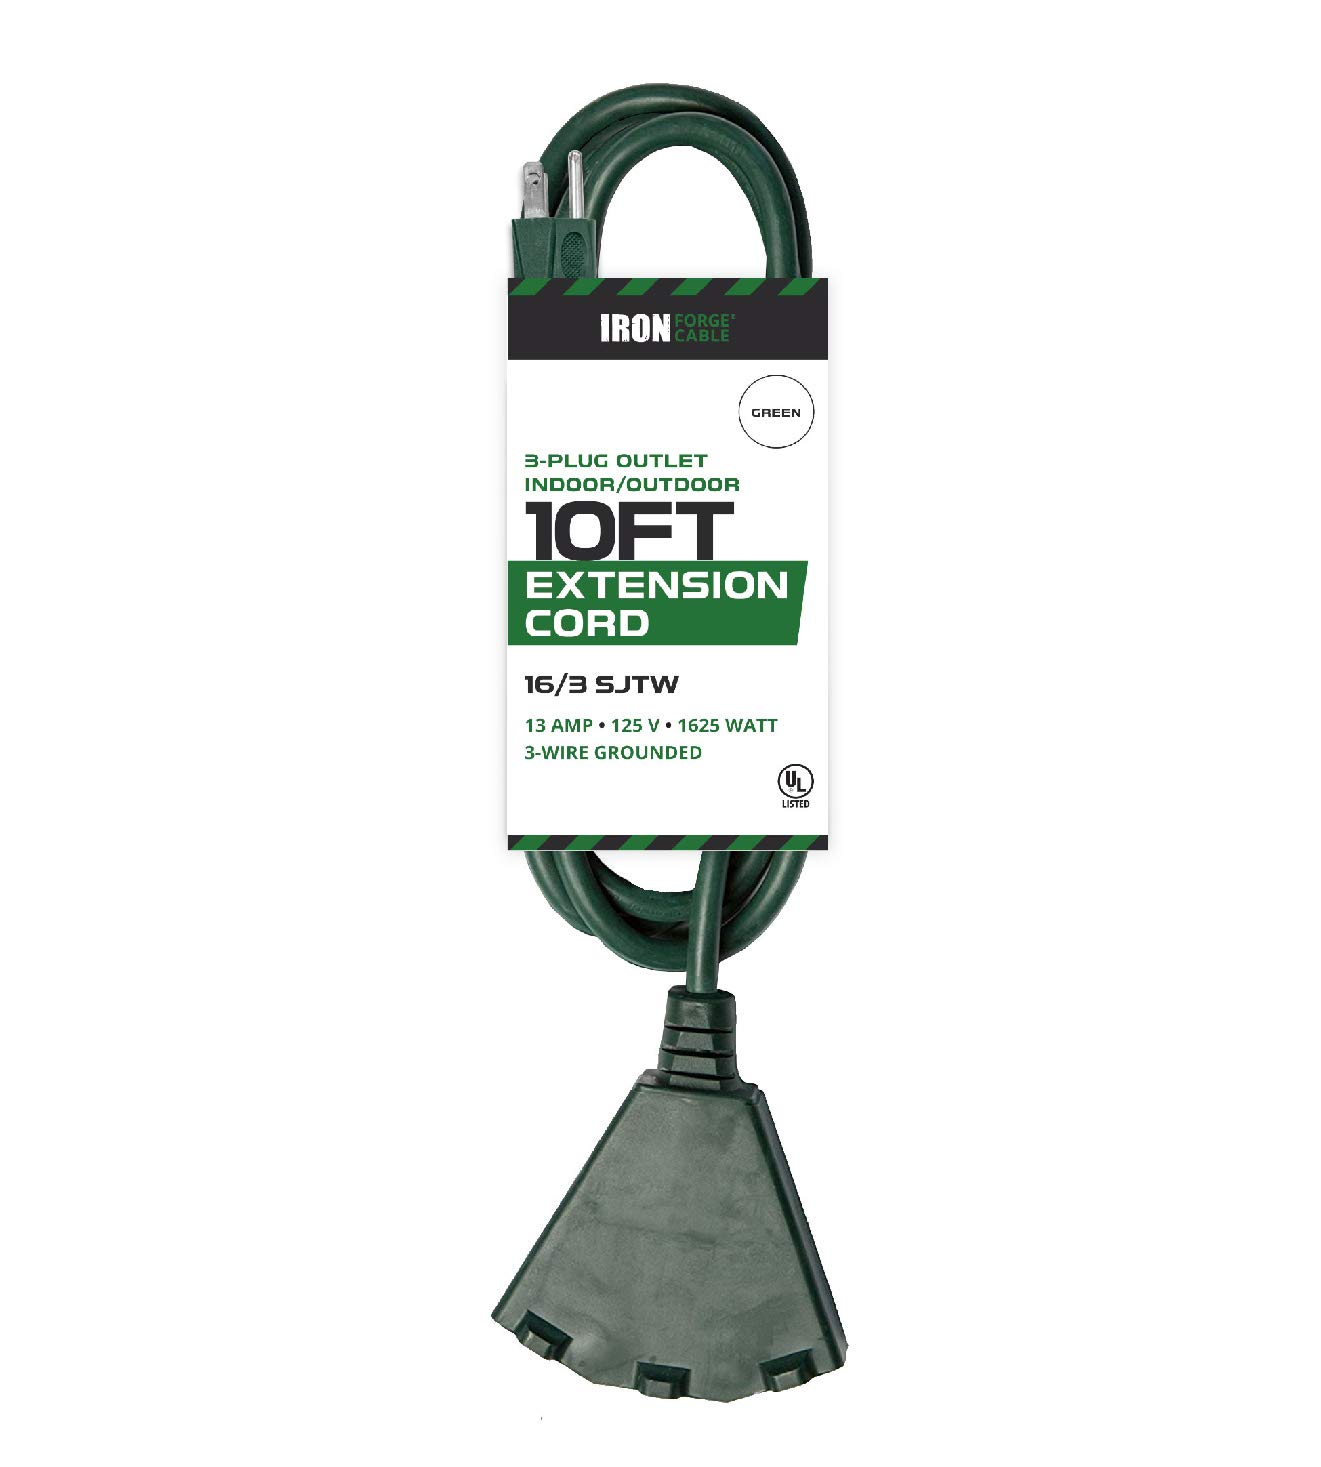 Iron Forge Cable Outdoor Extension Cord